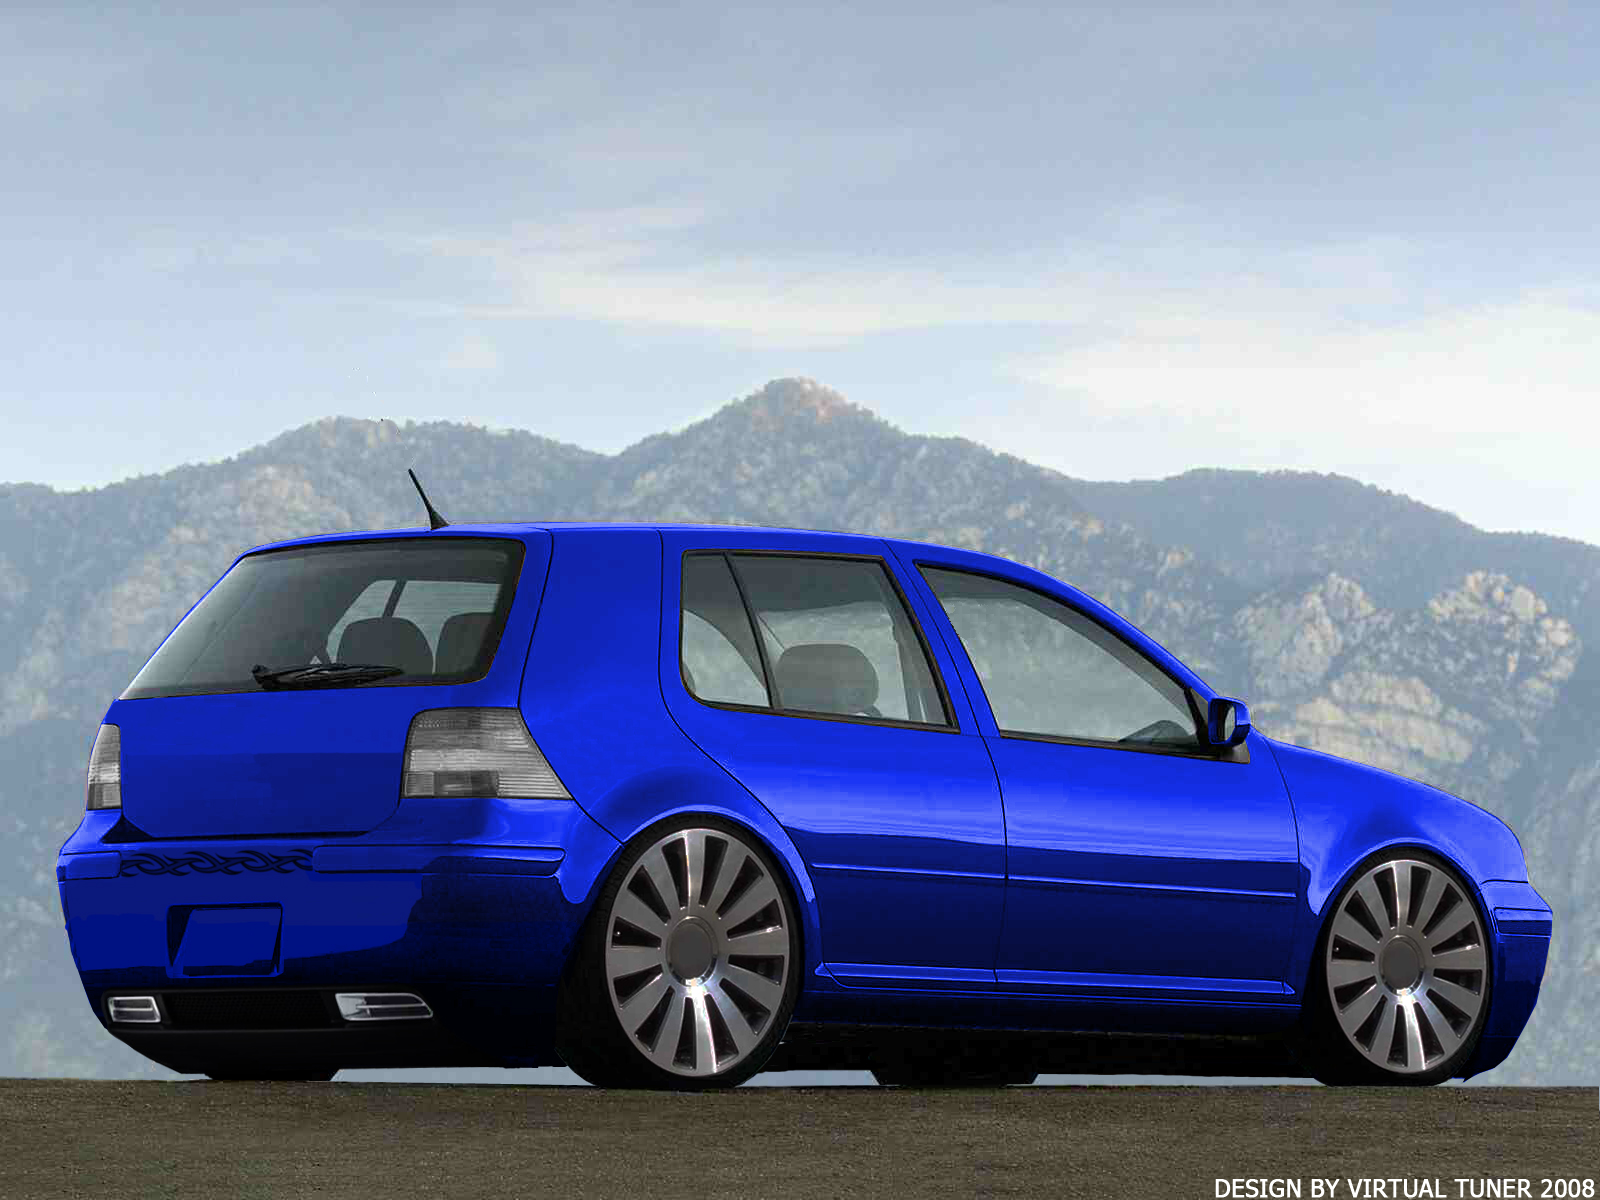 vw golf iv fahrwerk motorhaubenver innenraum felgen. Black Bedroom Furniture Sets. Home Design Ideas